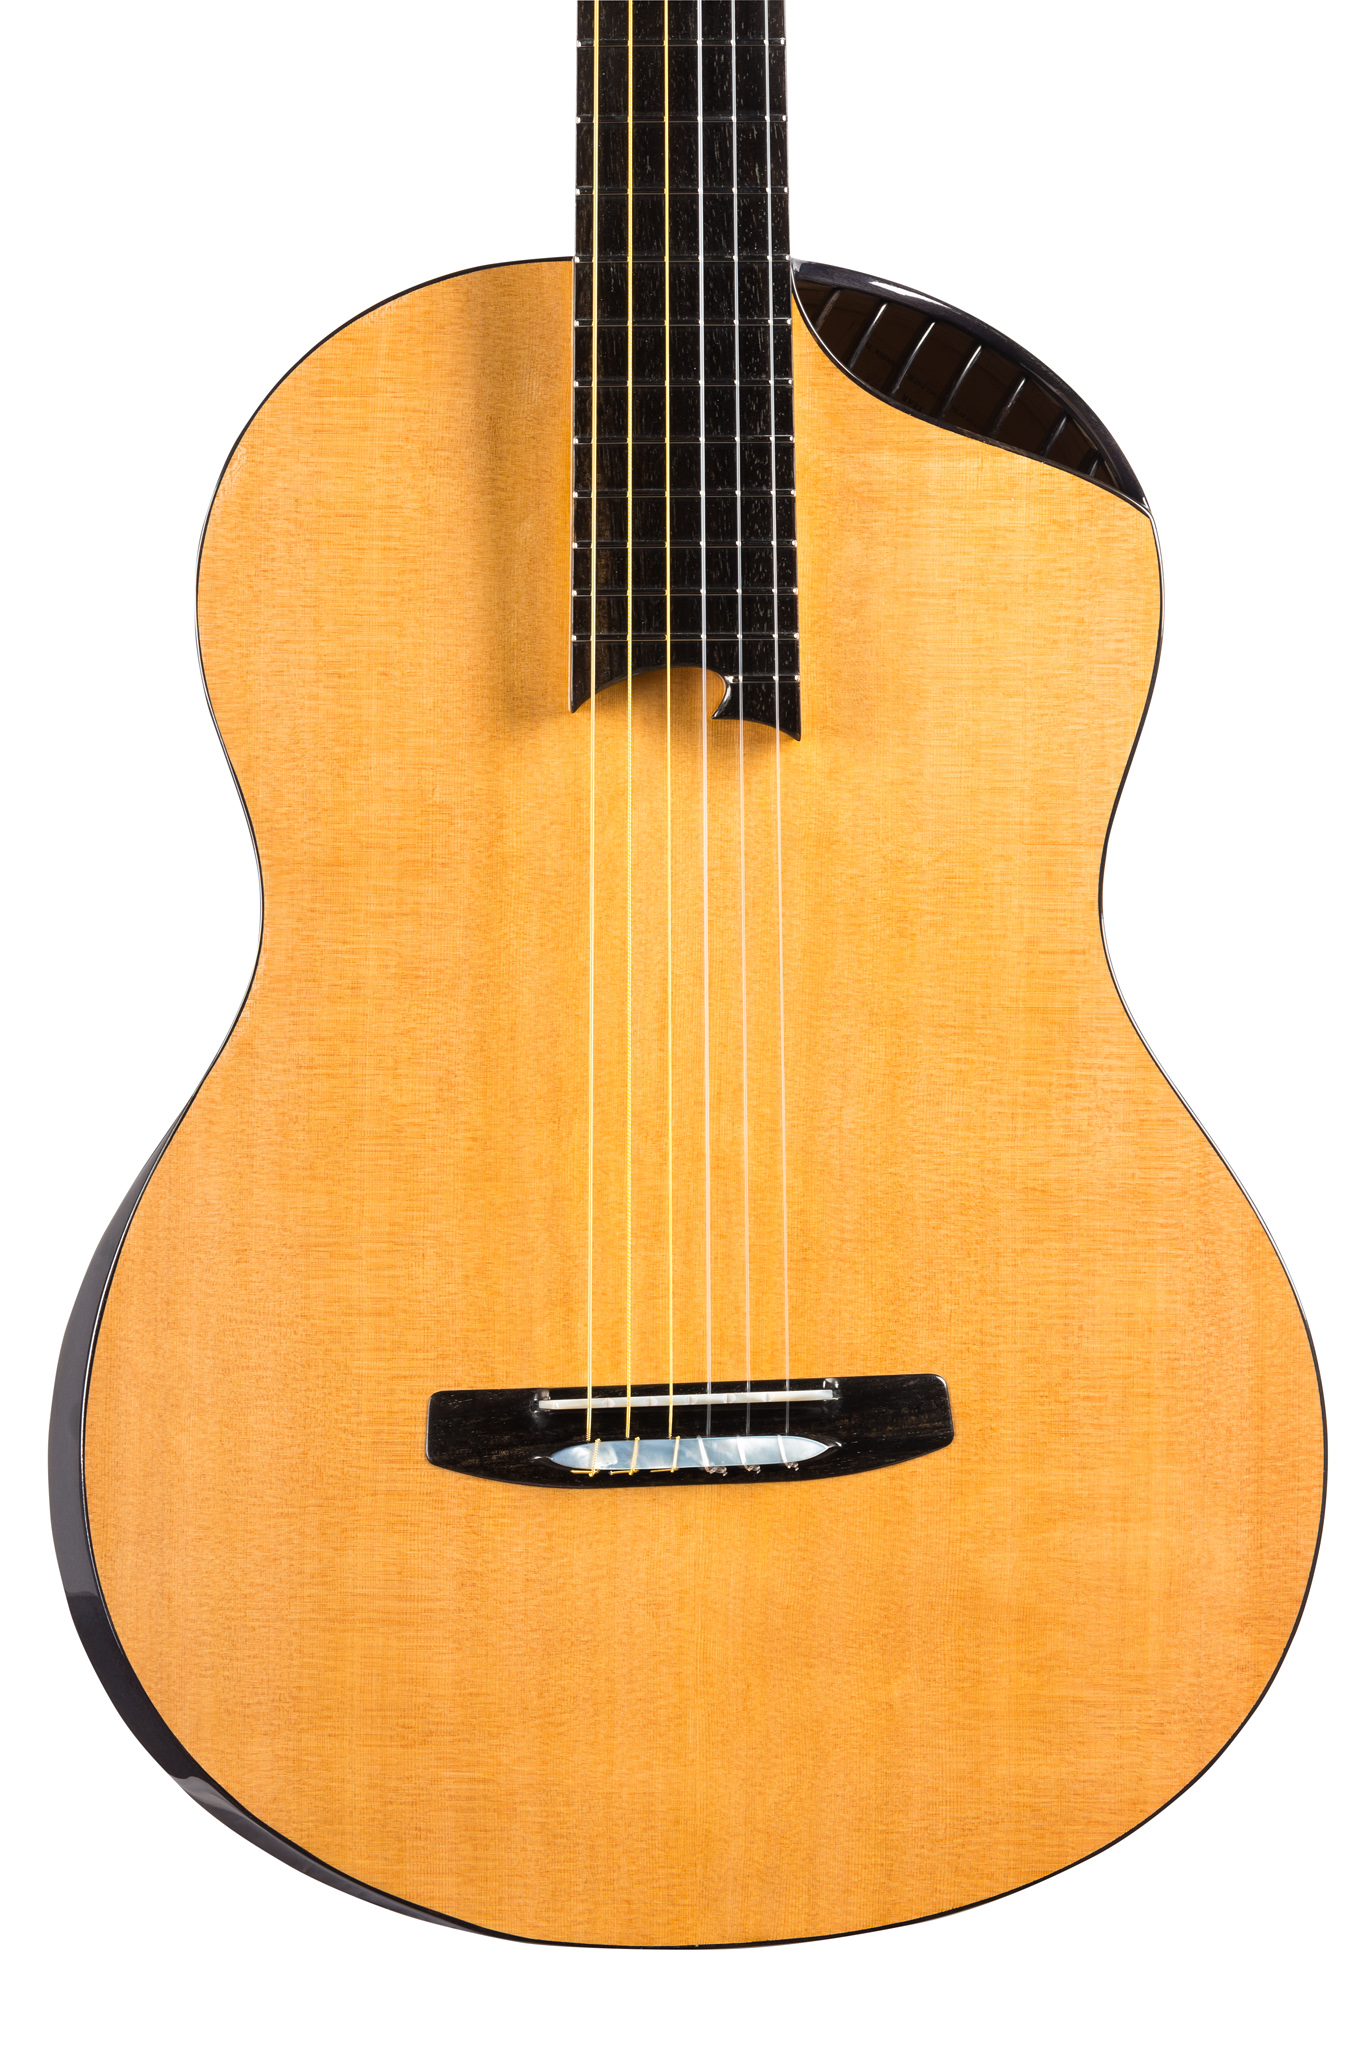 Double-top Cedar Guitar without standard soundhole